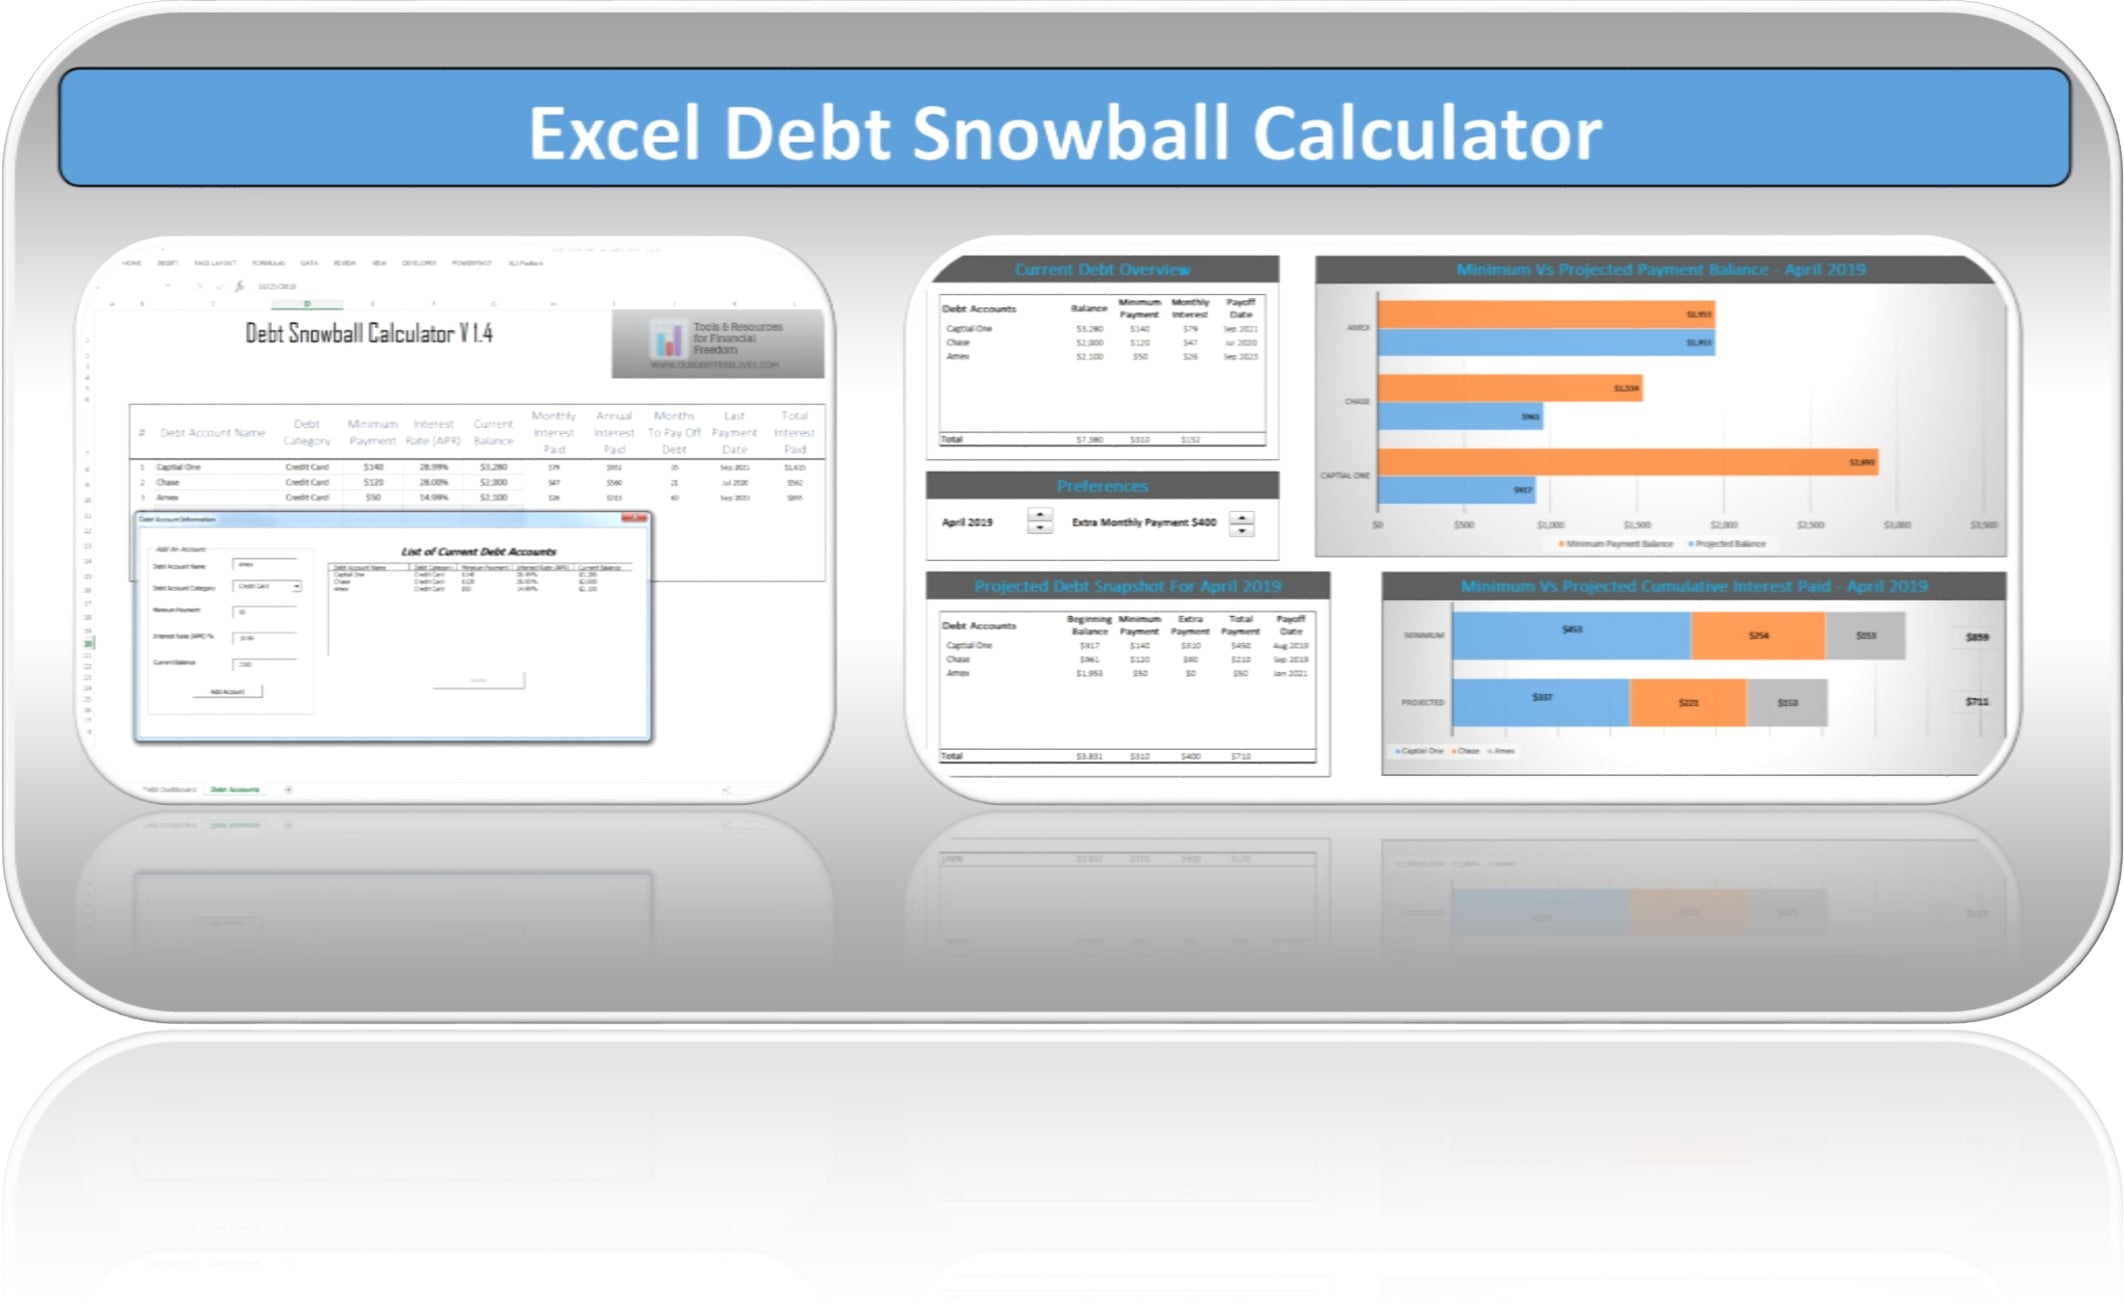 Excel Debt Snowball Calculator